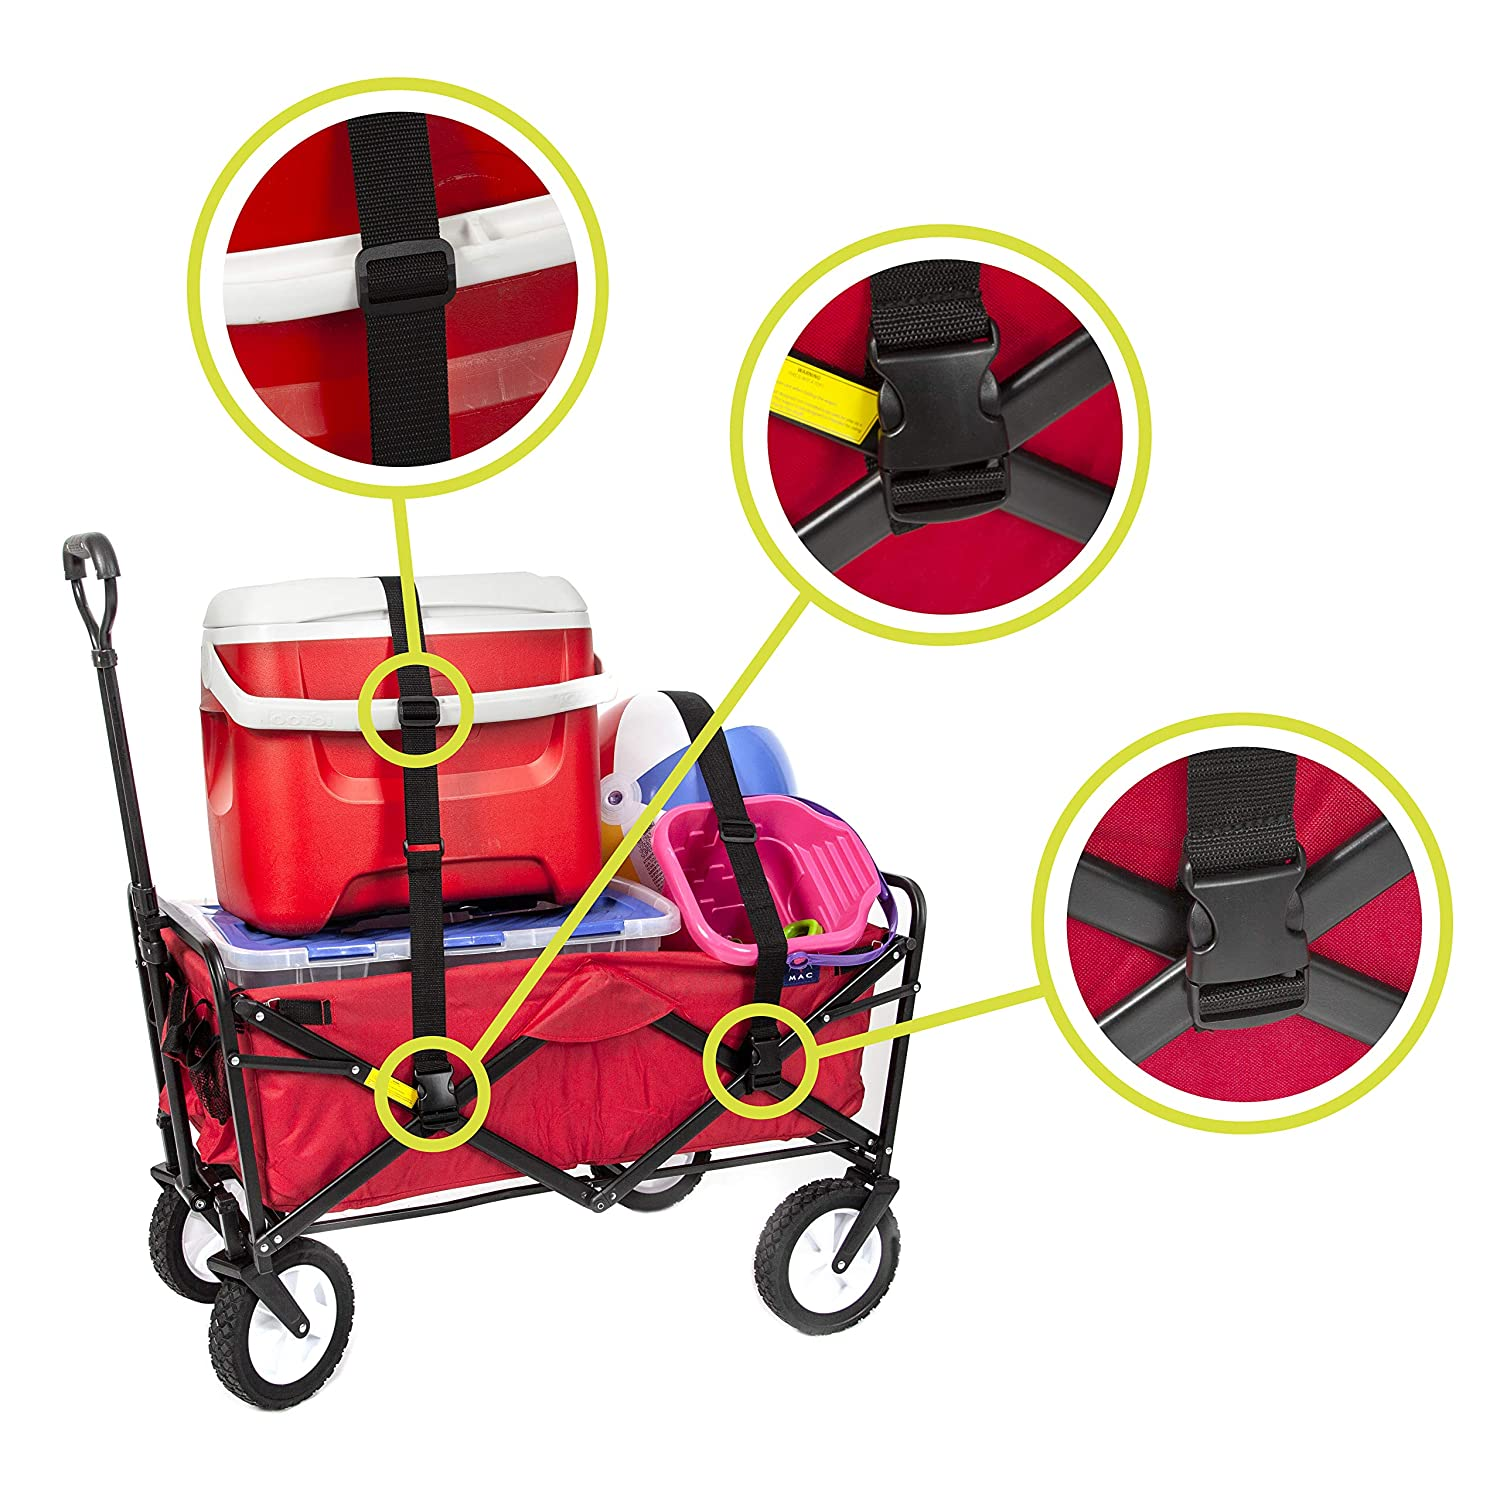 Mac Sports Collapsible Folding Outdoor Utility Wagon Straps Only, Black